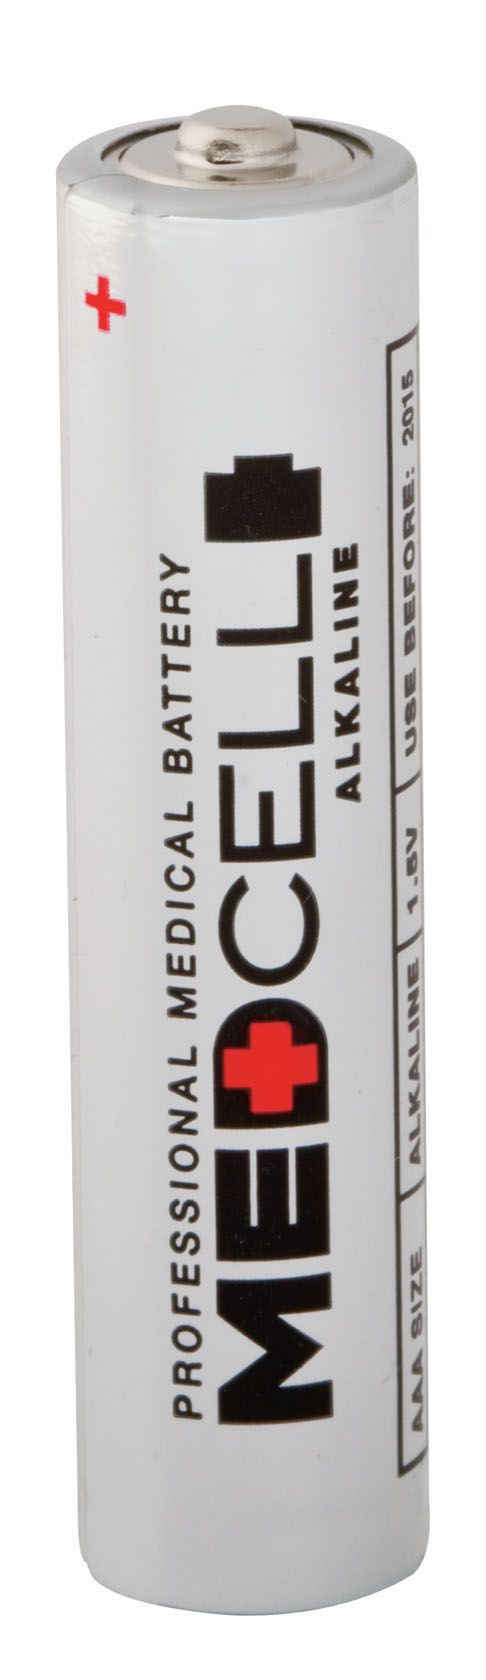 Medline MedCell Alkaline Battery - Battery, 1.5V, Aaa, Box of 144 - Model MPHBAAA